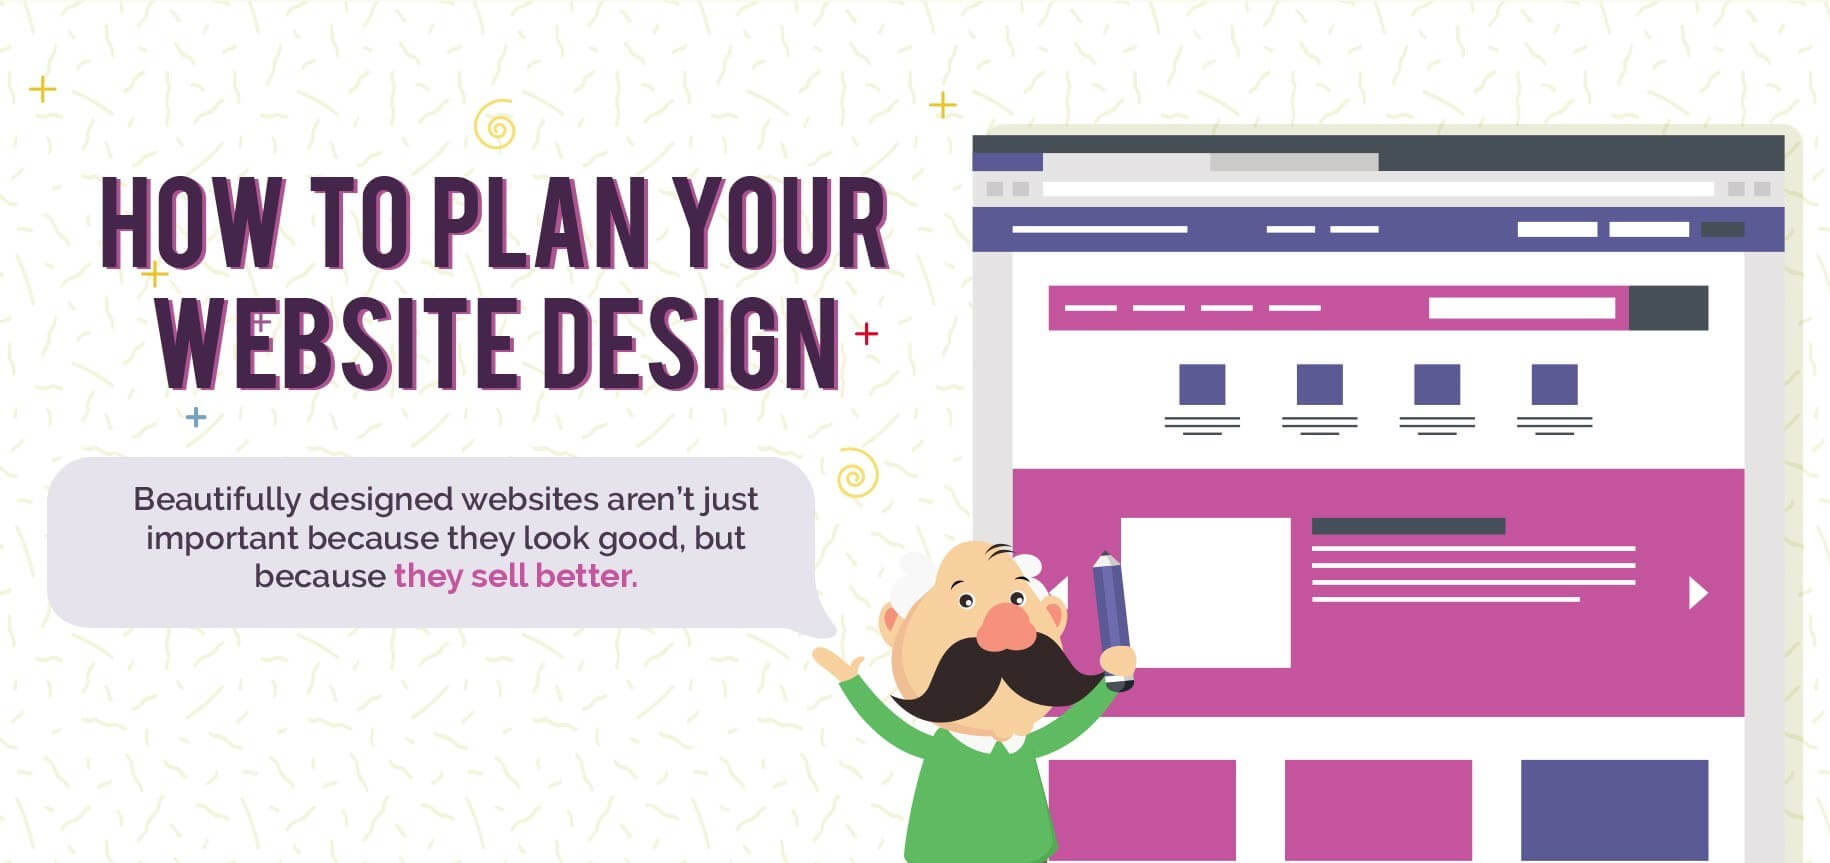 Infographic: Plan Your Website Design